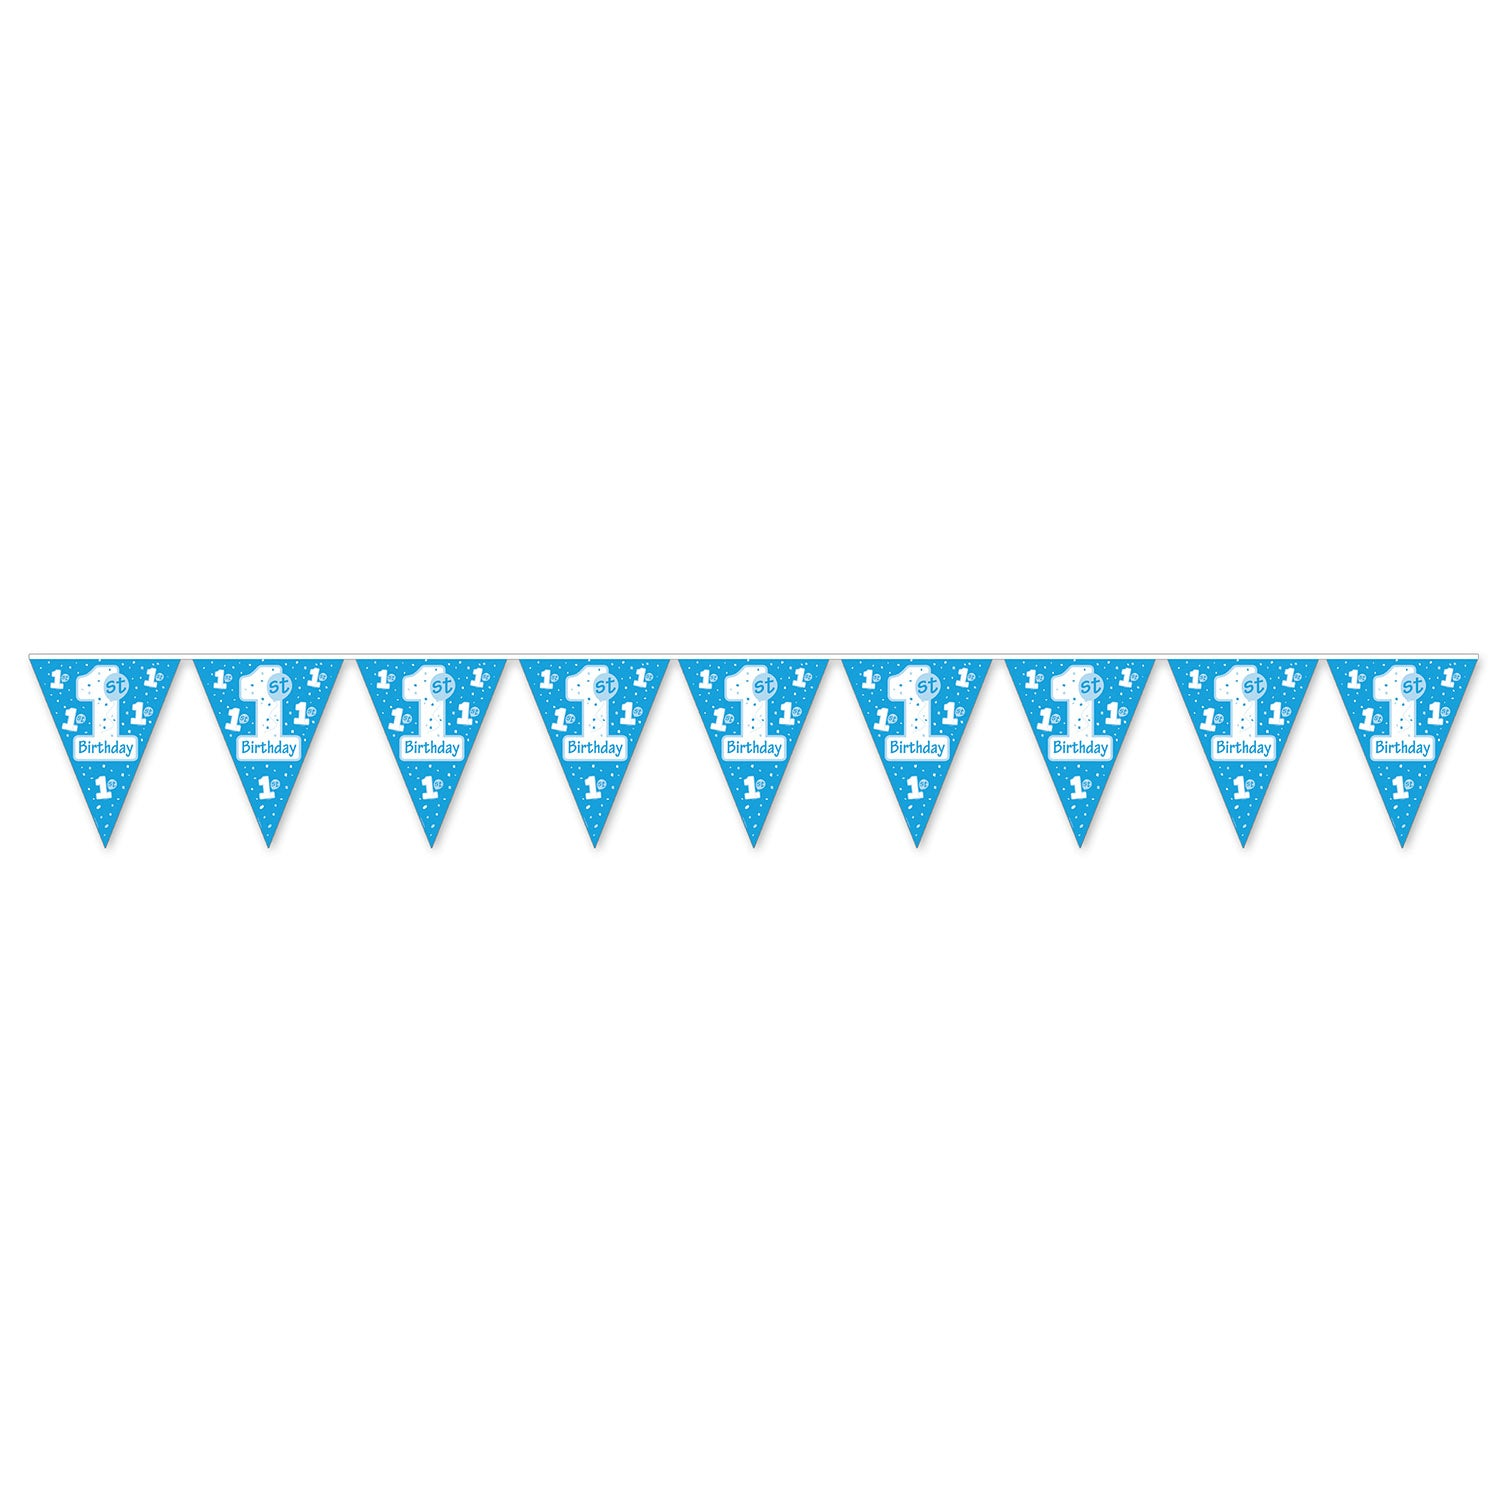 1st Birthday Pennant Banner, lt blue by Beistle - 1st Birthday Party Decorations